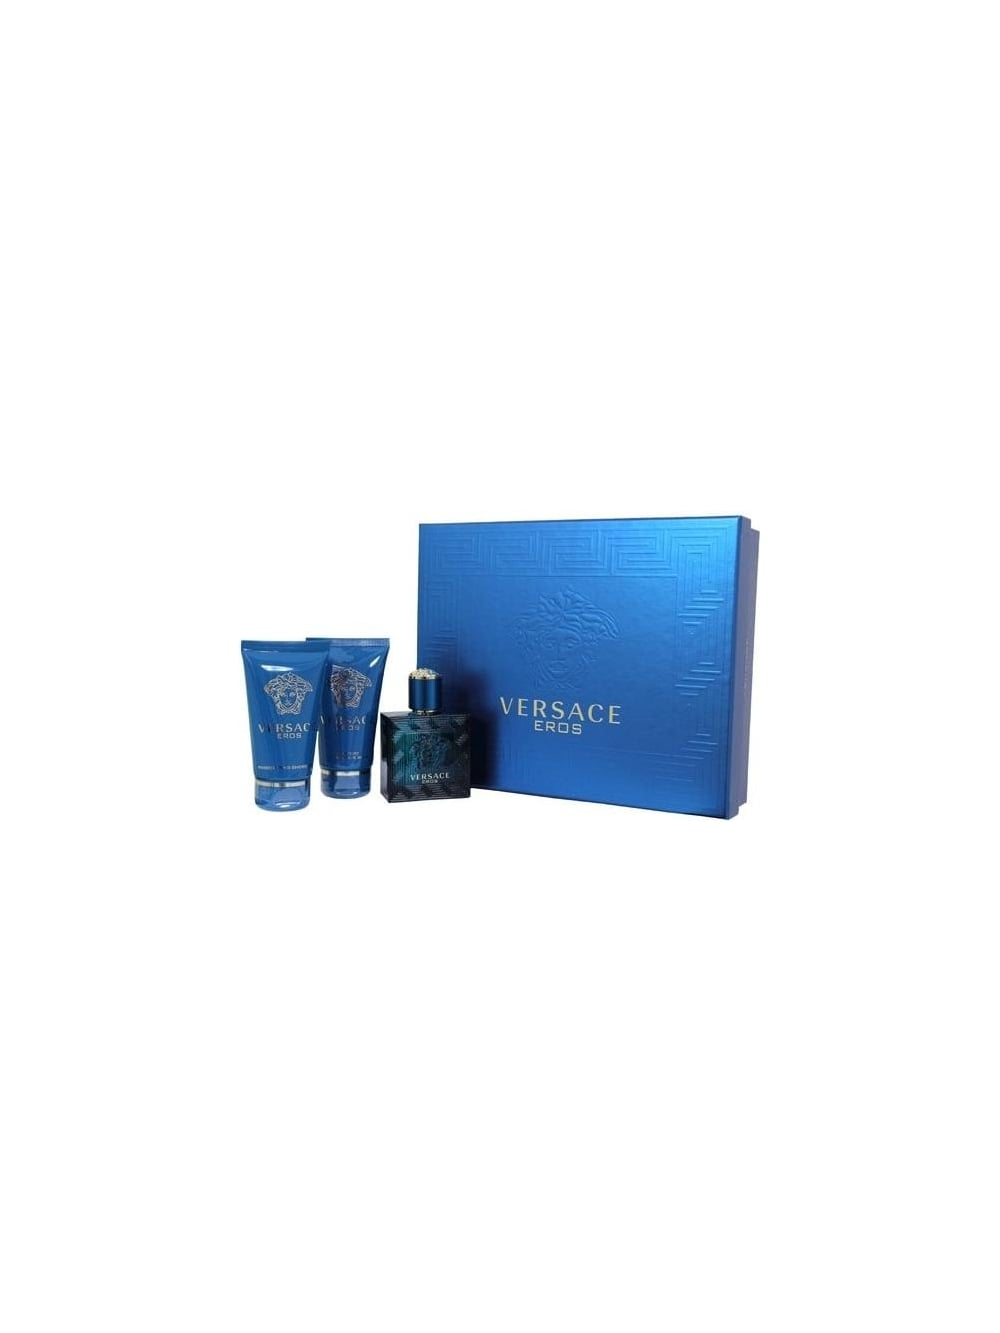 Versace Eros 50 ML Gift Set - Northern Threads